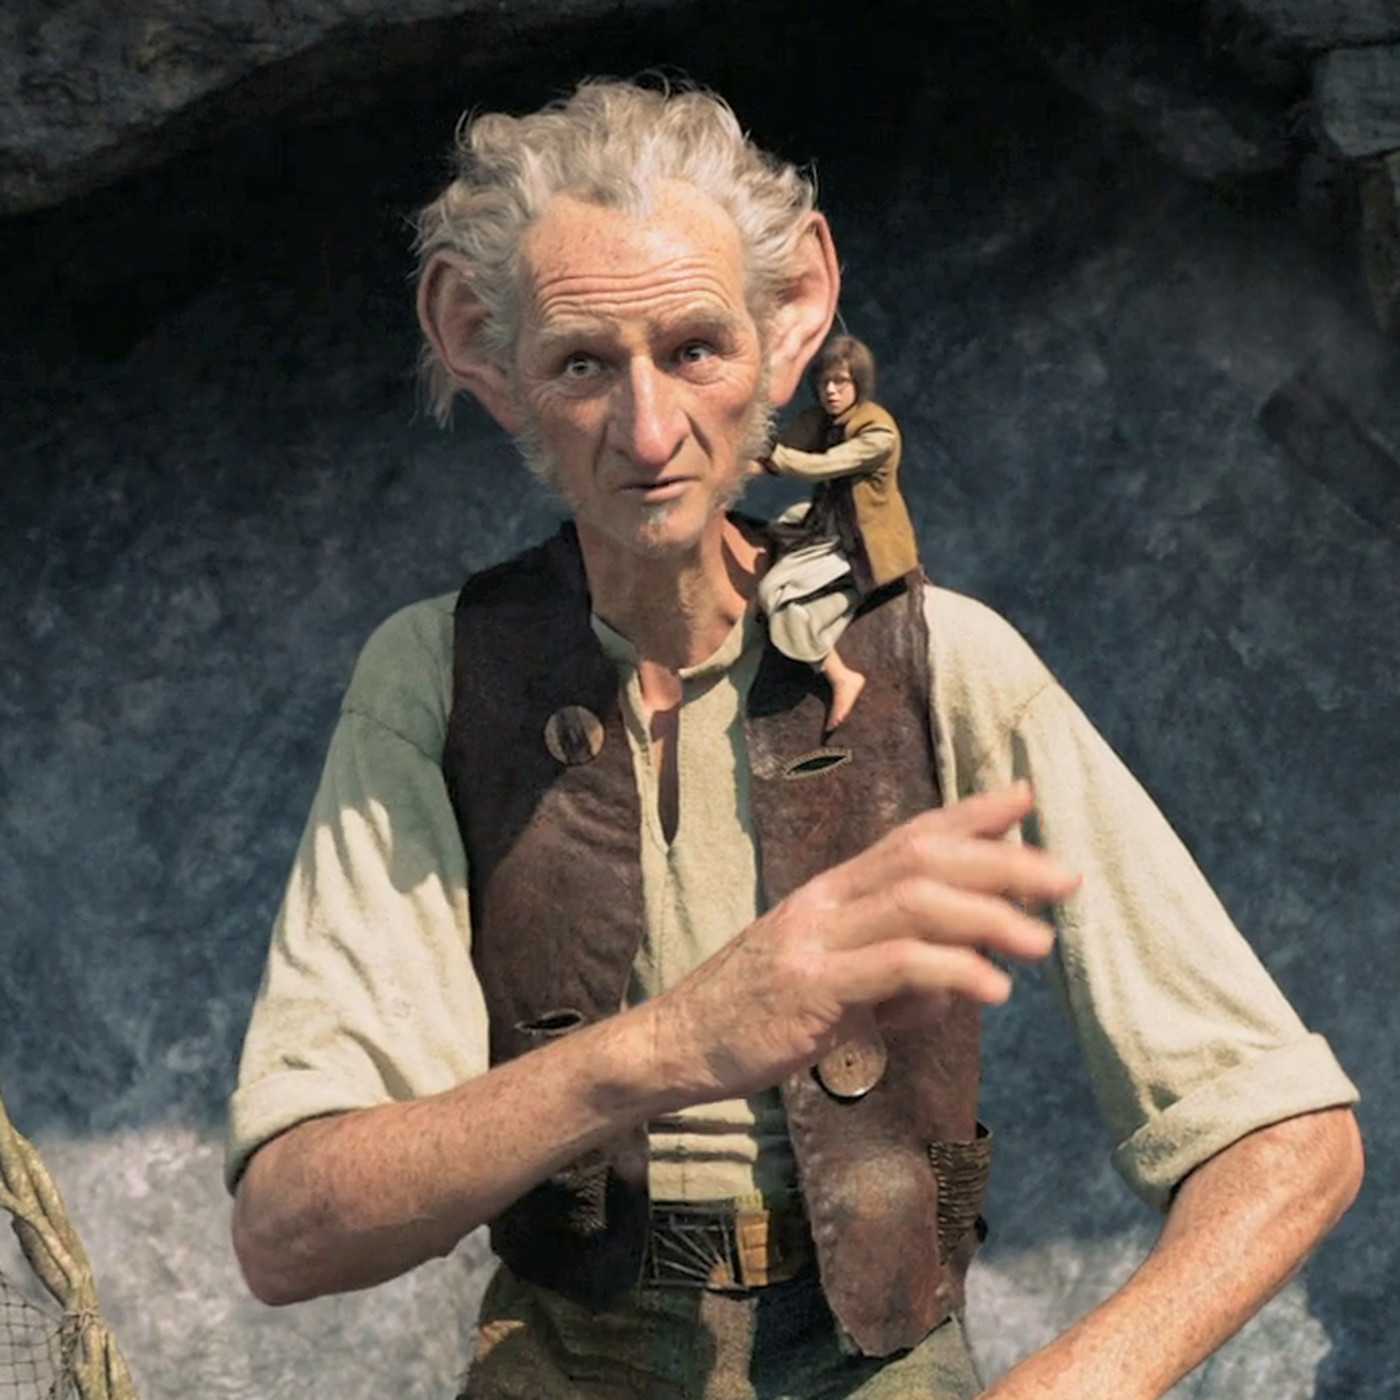 The Bfg Review Steven Spielberg S Take On Roald Dahl Is All Treacle No Spice The Verge